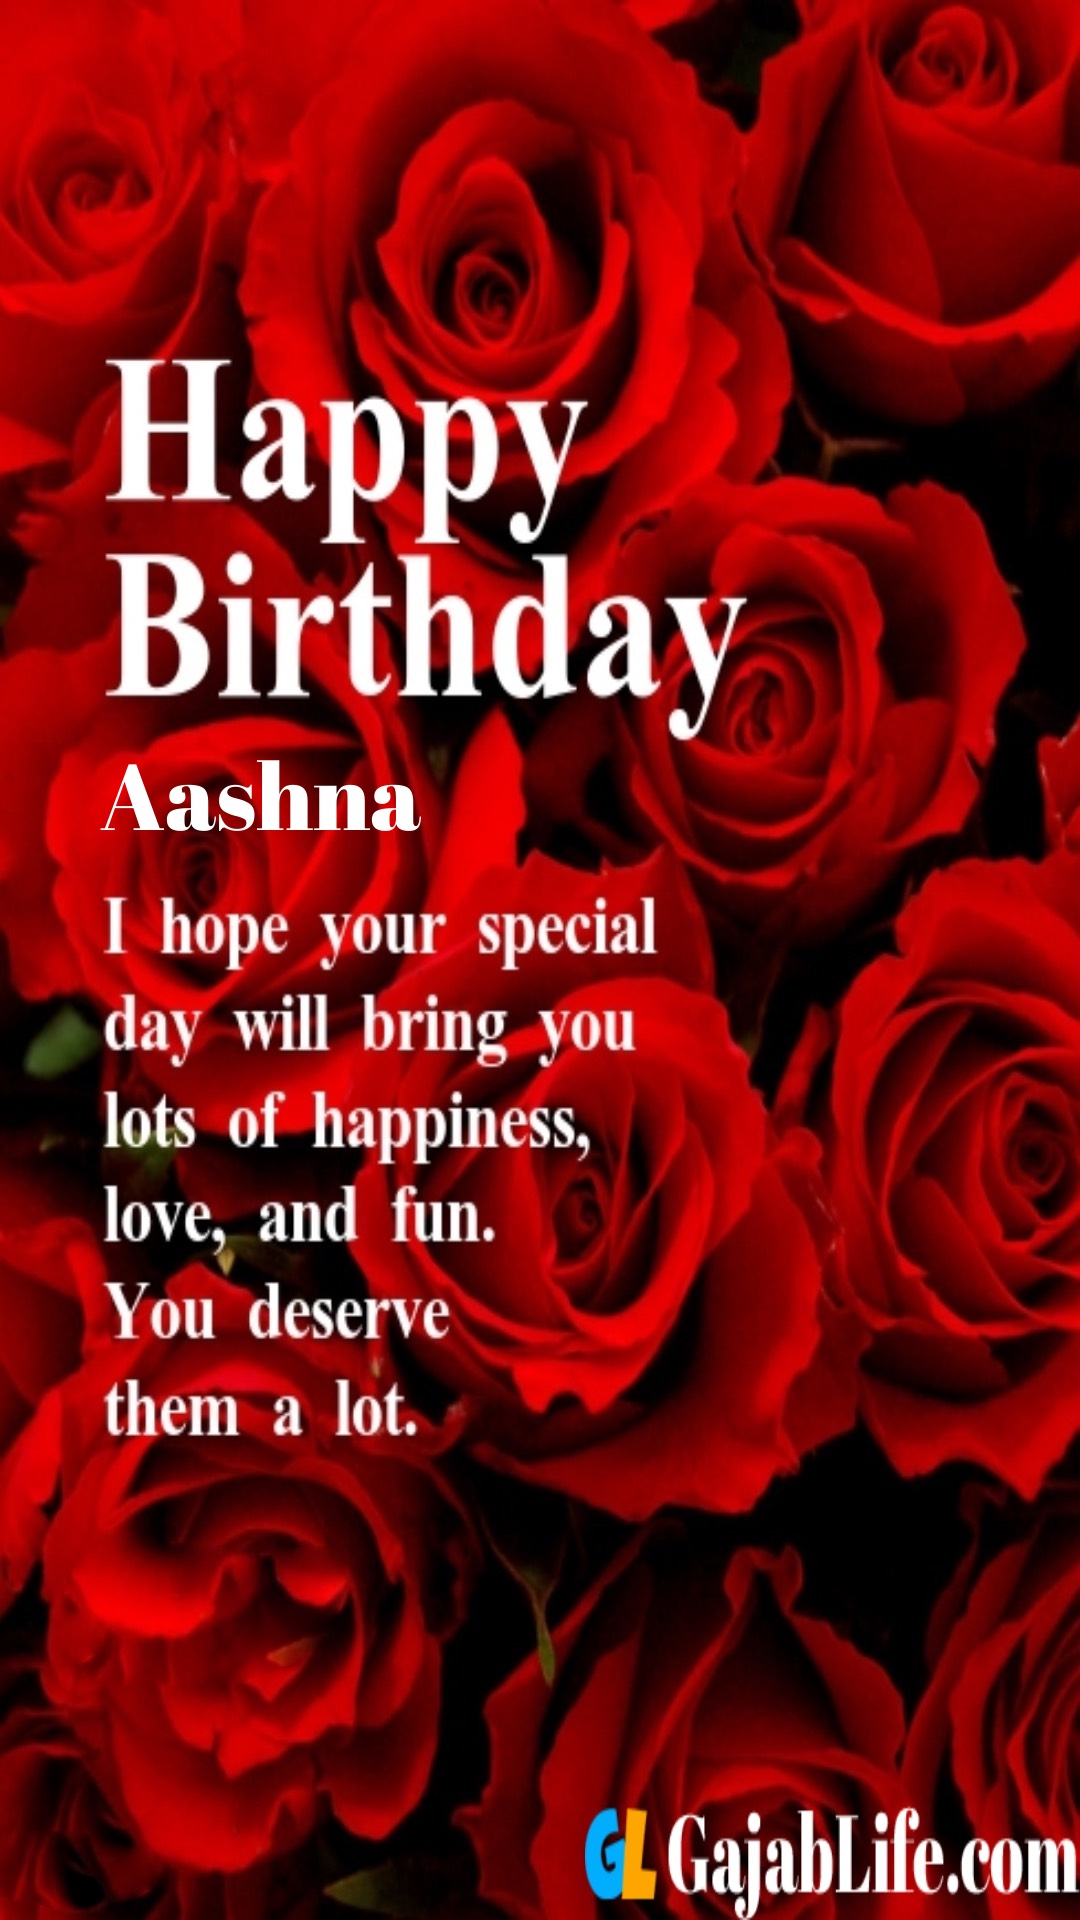 Aashna birthday greeting card with rose & love